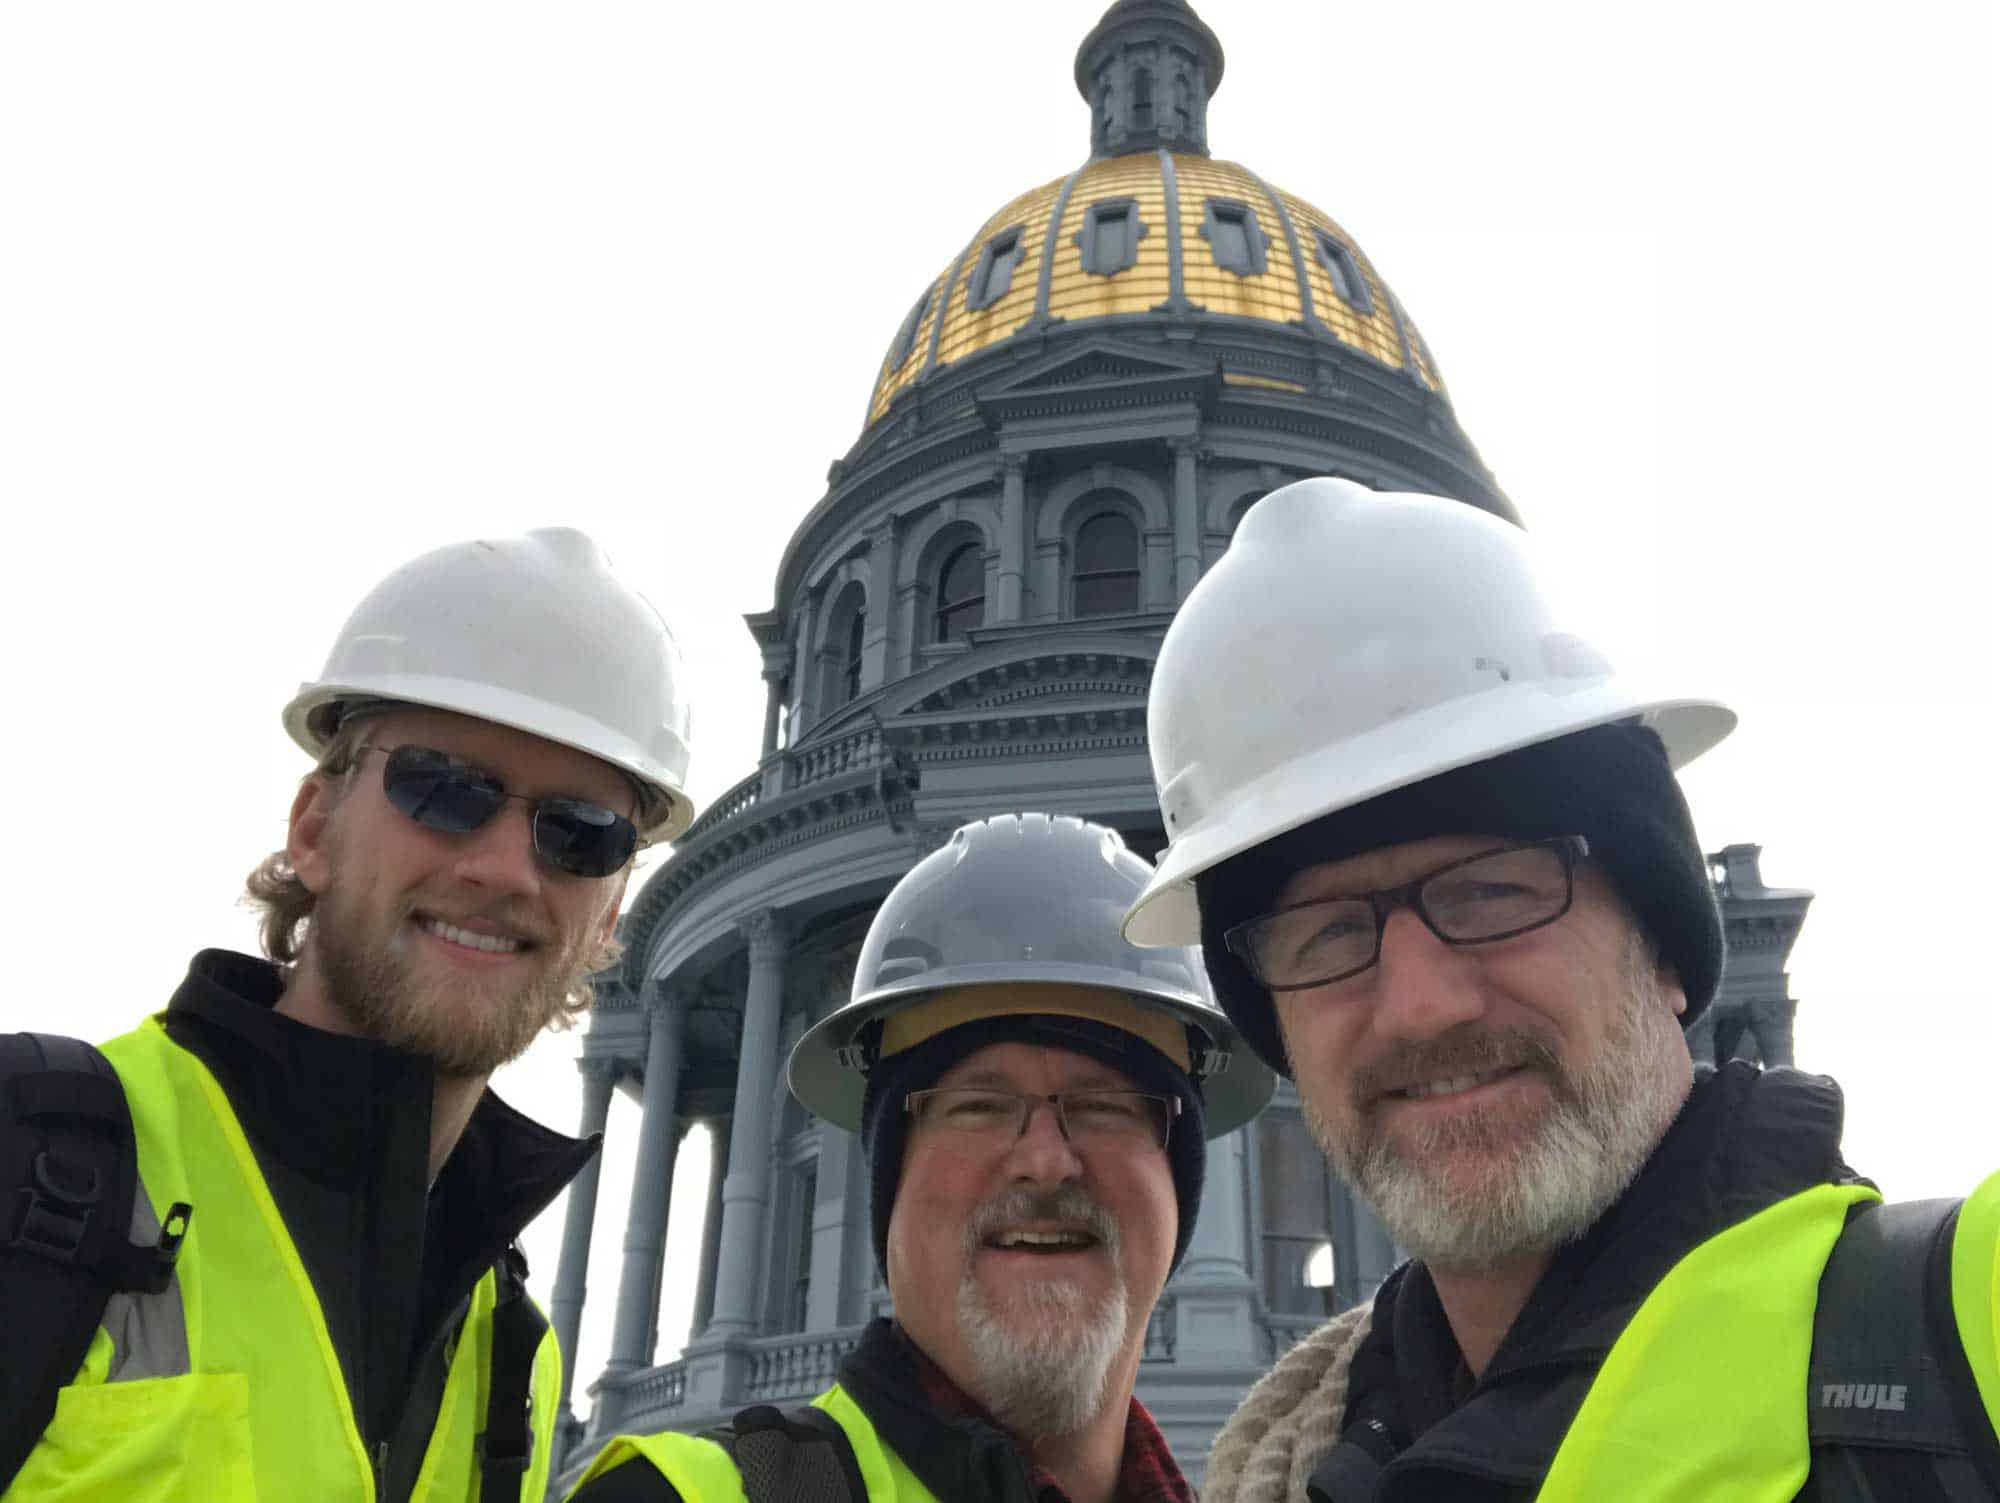 Jake and Mark worked on the Colorado State Capitol Building together, along with Michael Christopher, a colleague that Jake describes as a mentor.